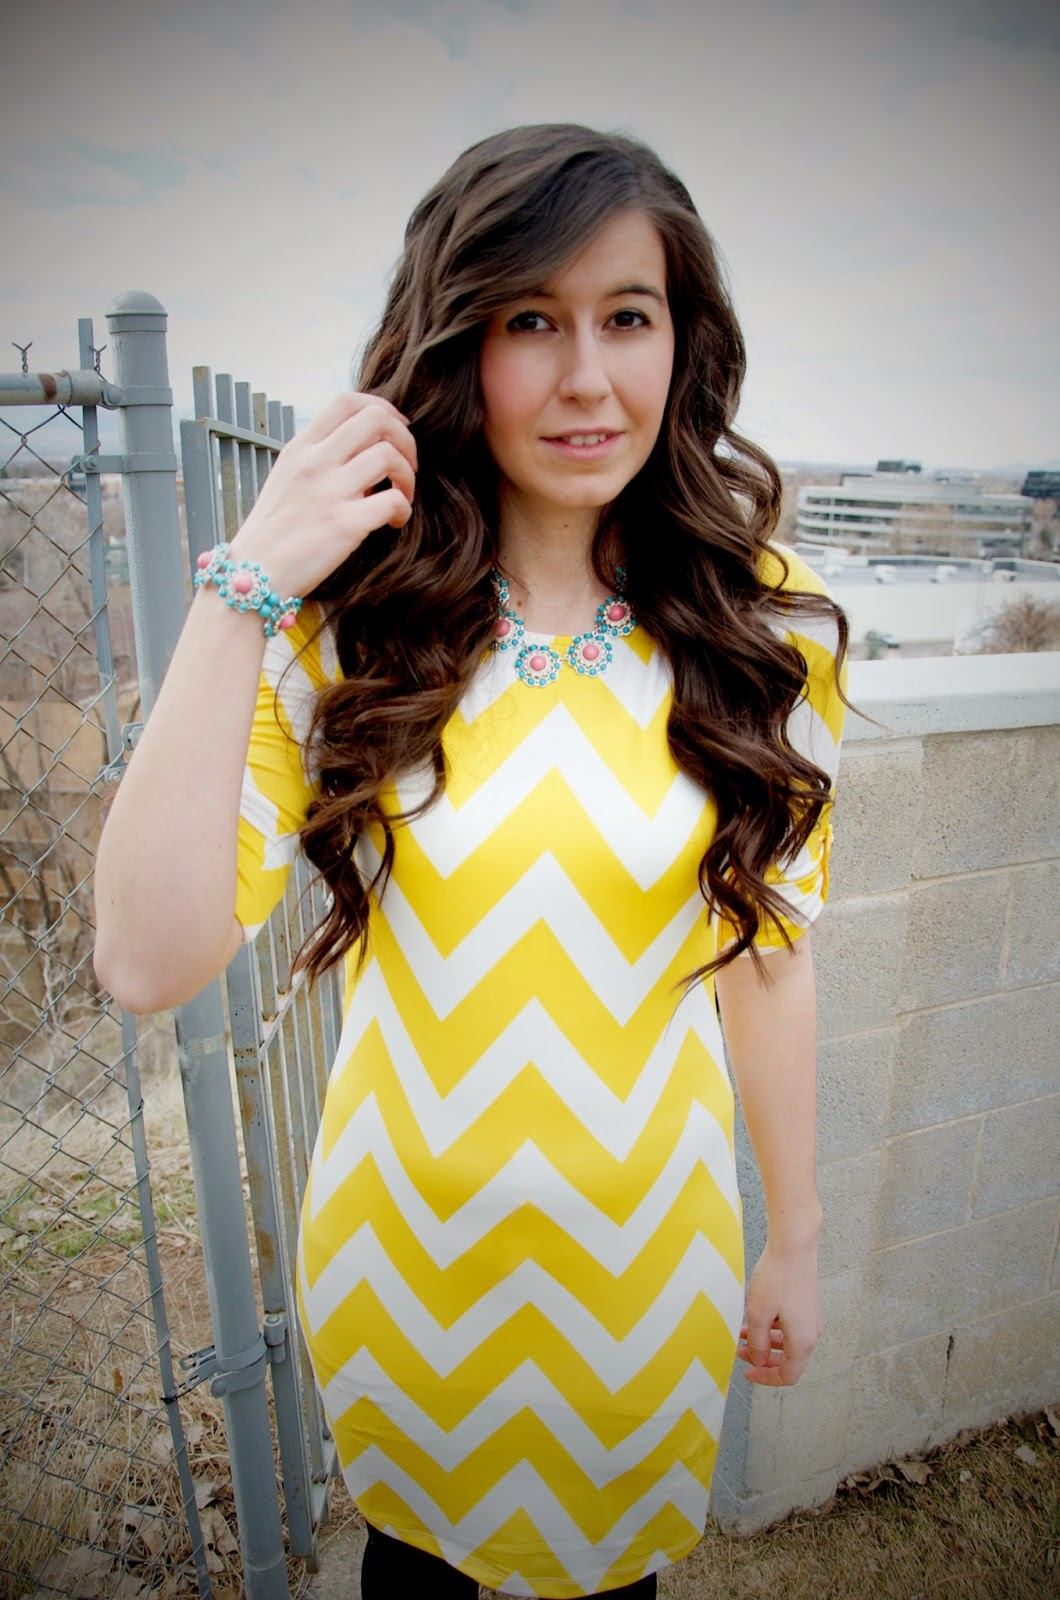 bliss bracelet, edward eliason photography, bliss necklace, chevron bodycon dress, chevron dress, chevron outfit, dolce vita, jewerly, our world boutique, our world boutique jewerly, ourworldboutique,